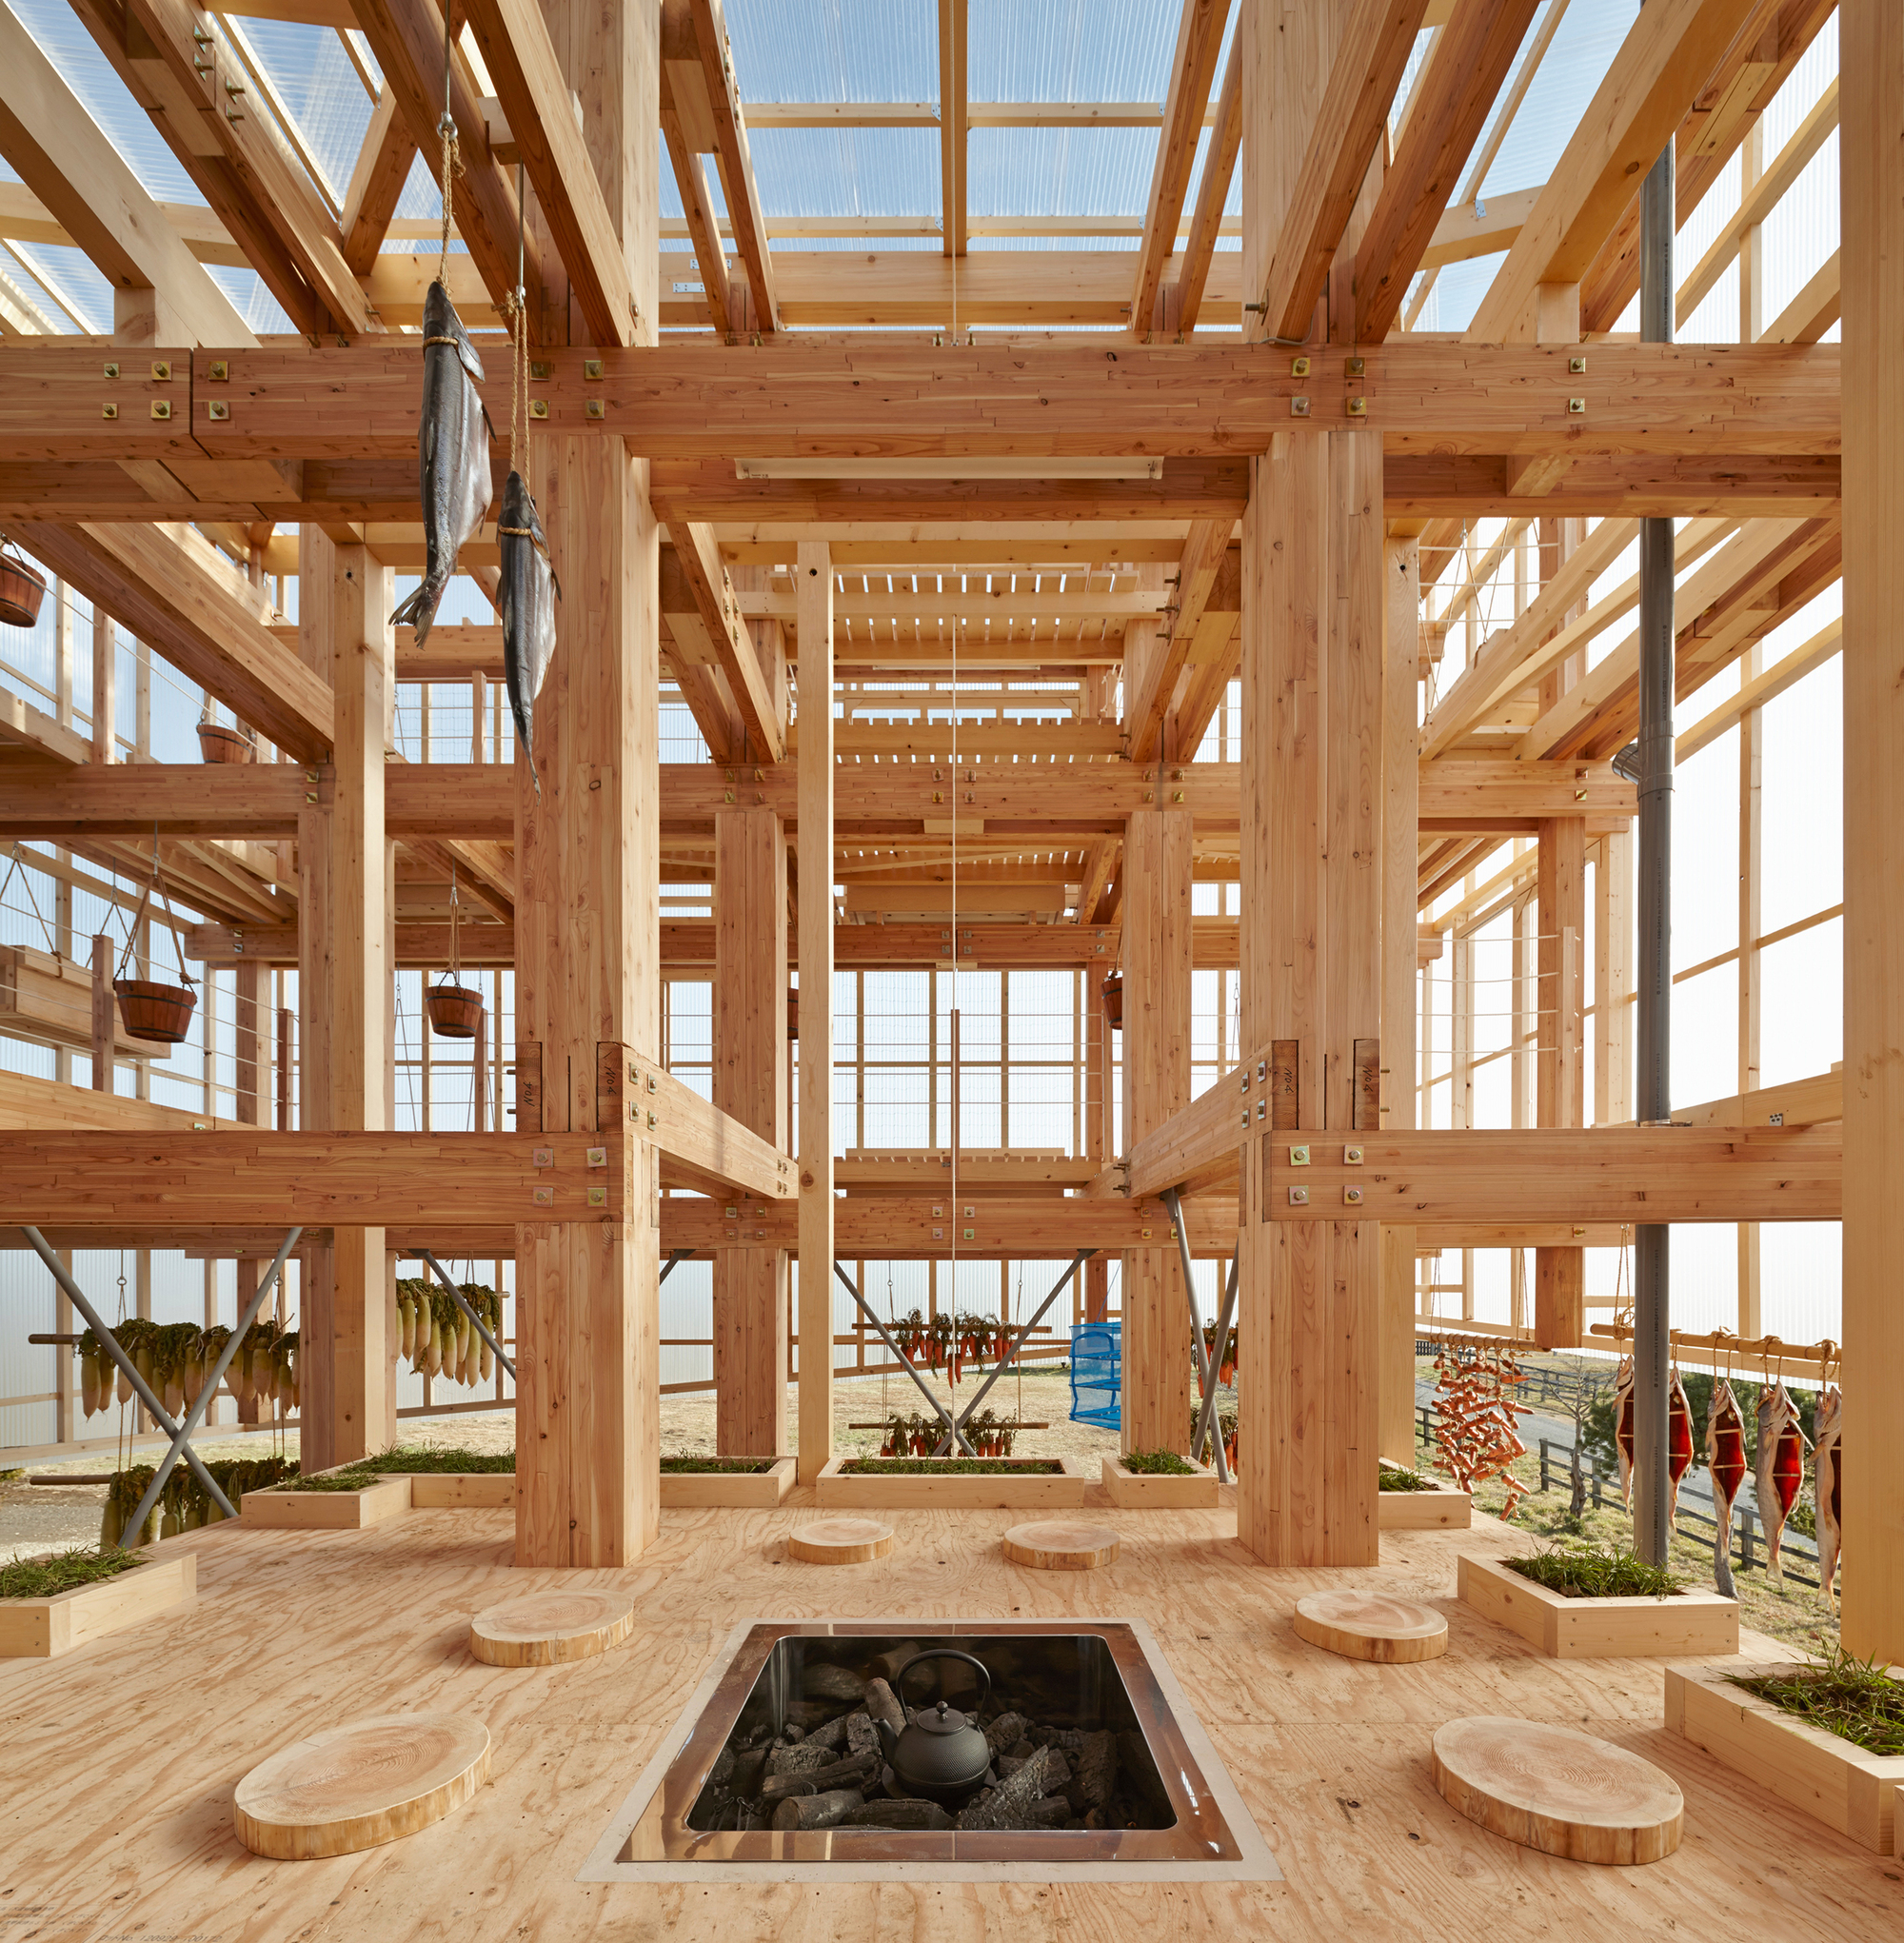 Berkeley Interior Design nest we grow / college of environmental design uc berkeley + kengo